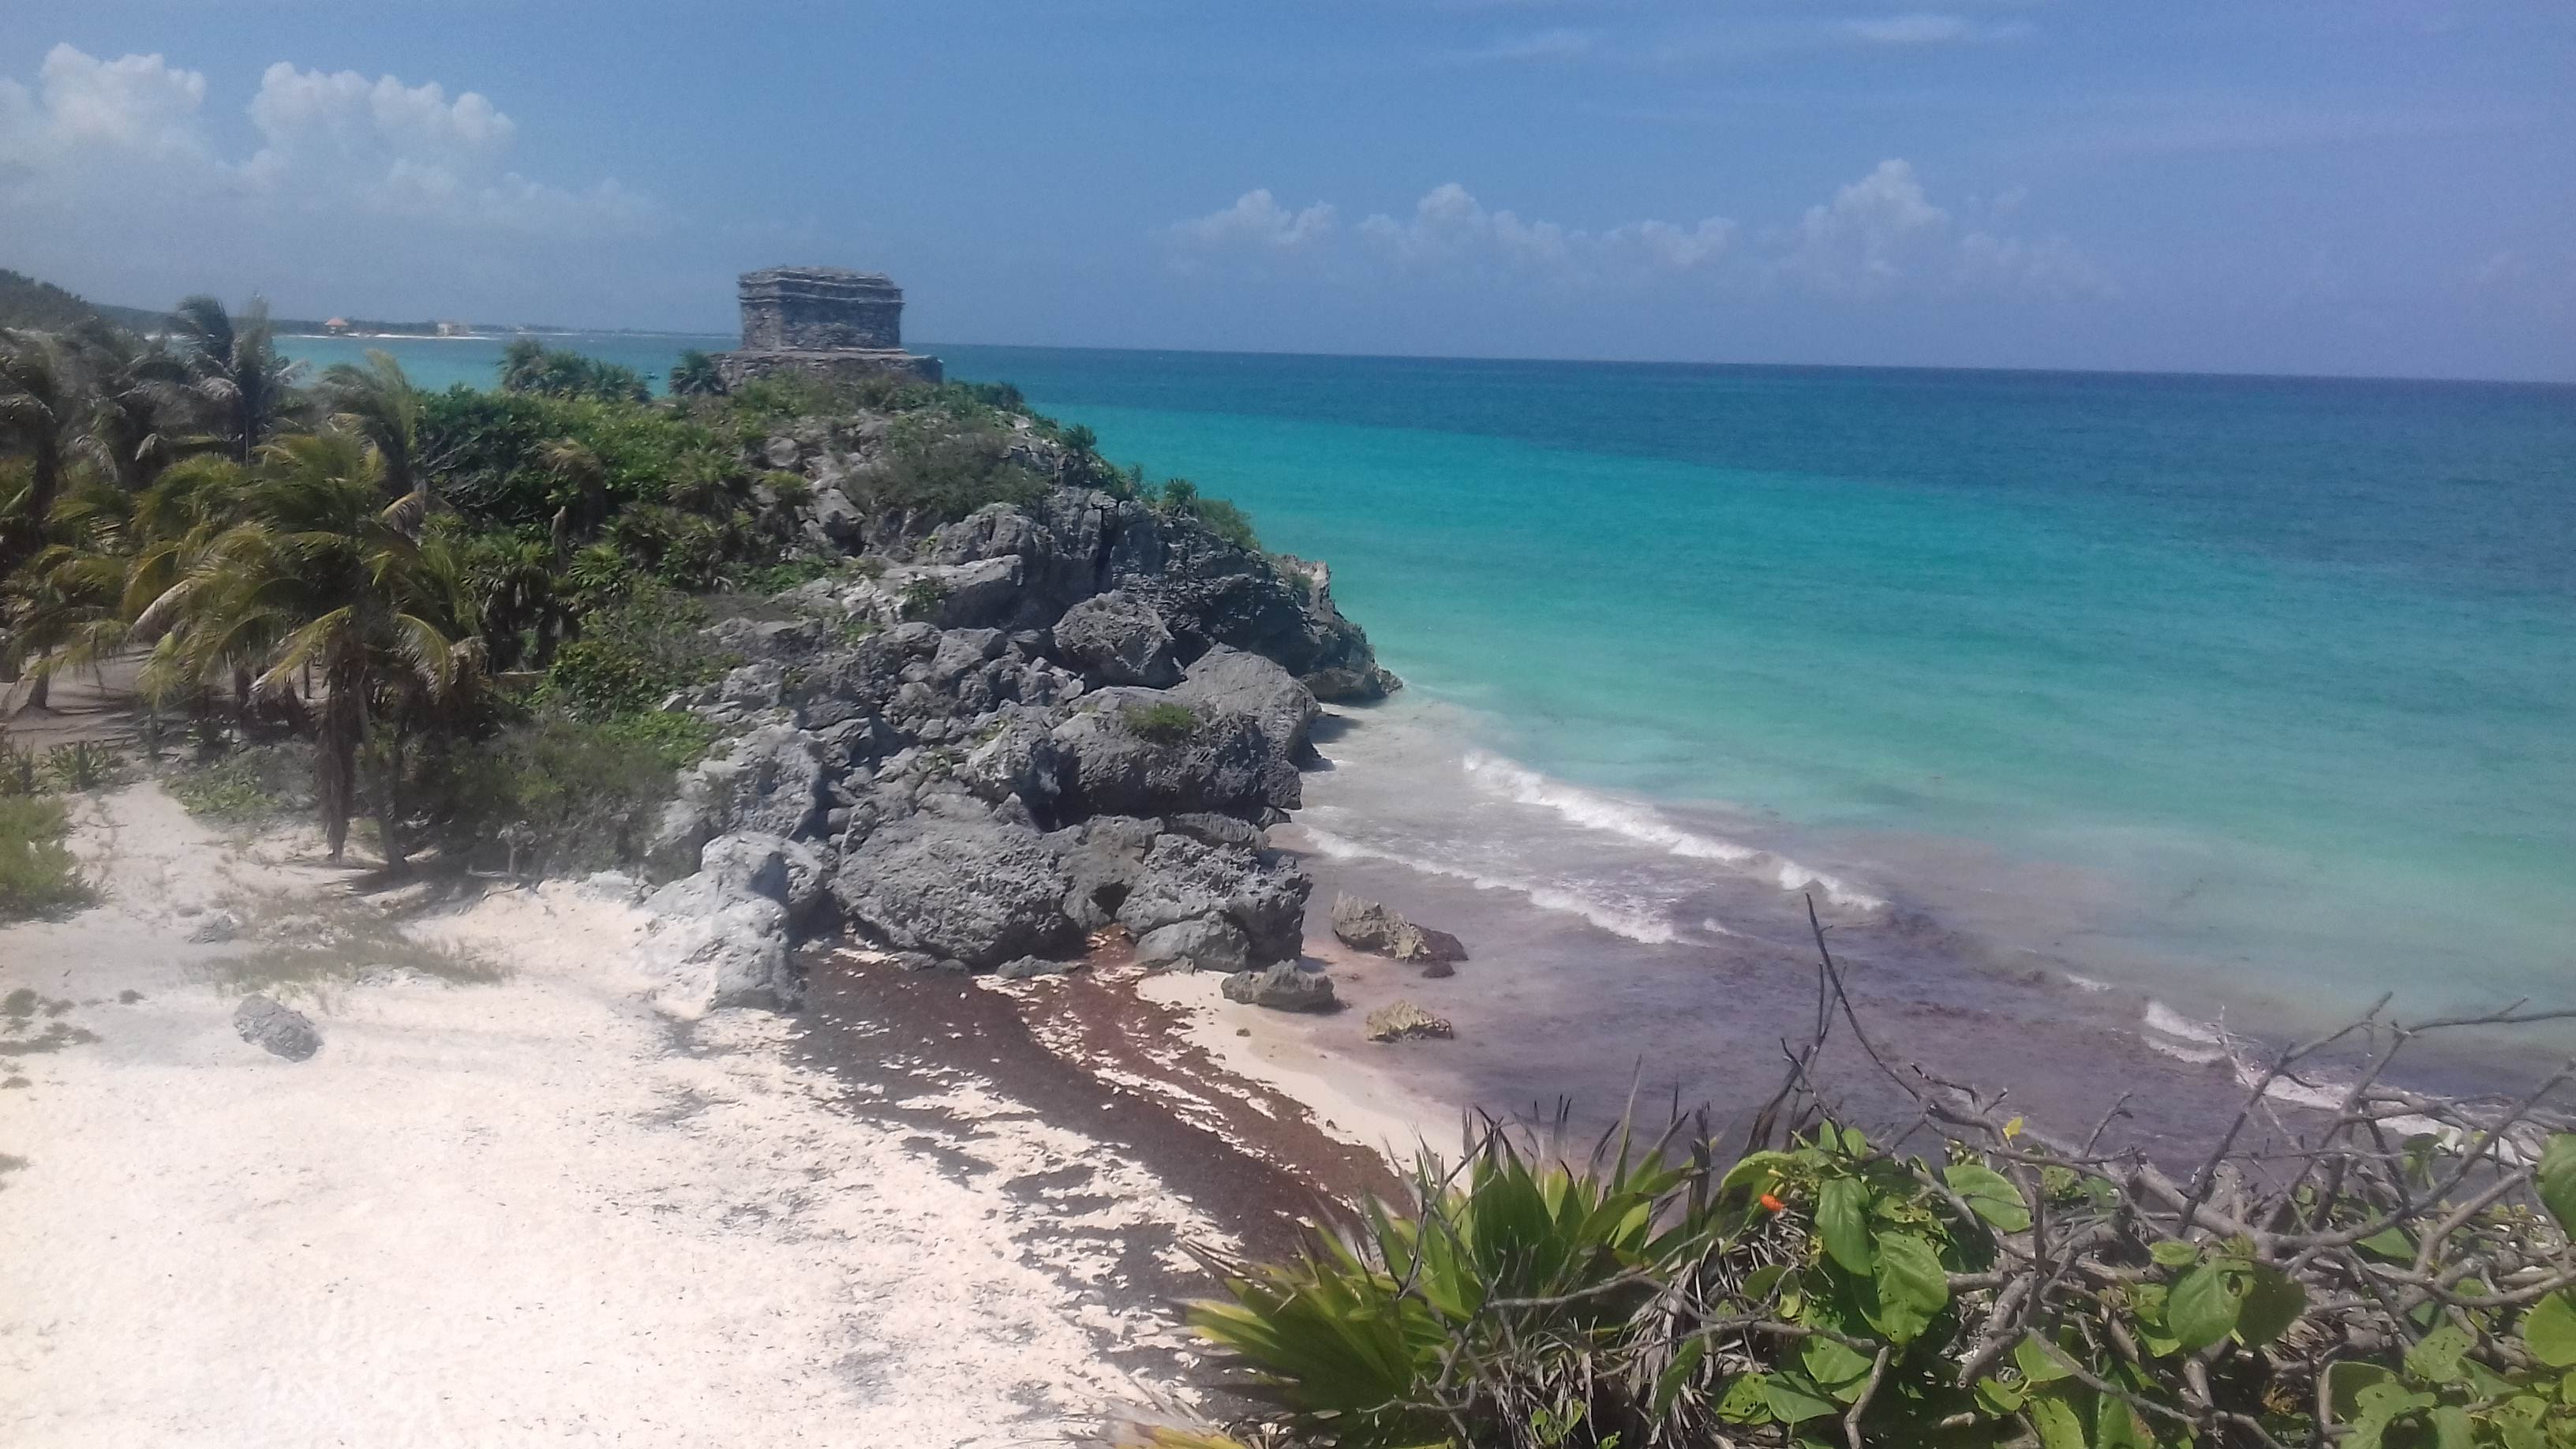 View from Tulum Ruins